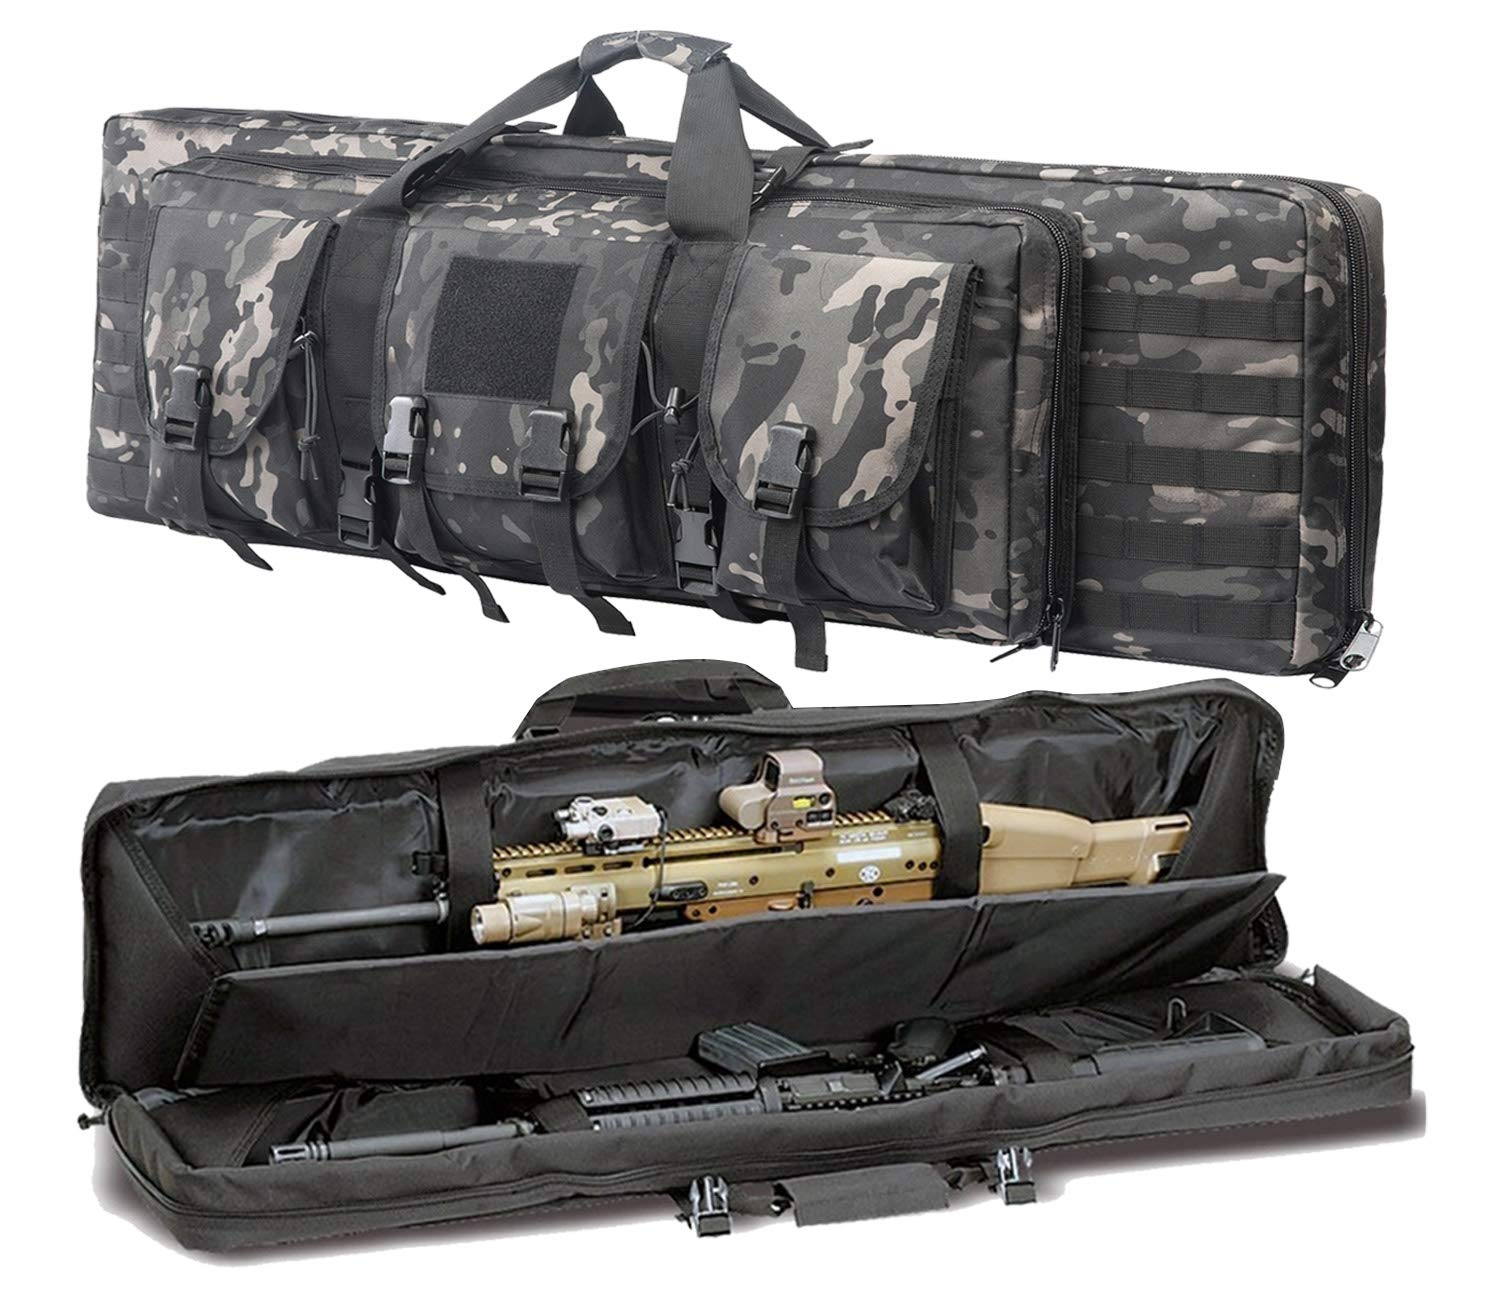 Double Strap 36//42 Inches Rifle Bag Fishing Hunting Tactical Soft Gun Case Long